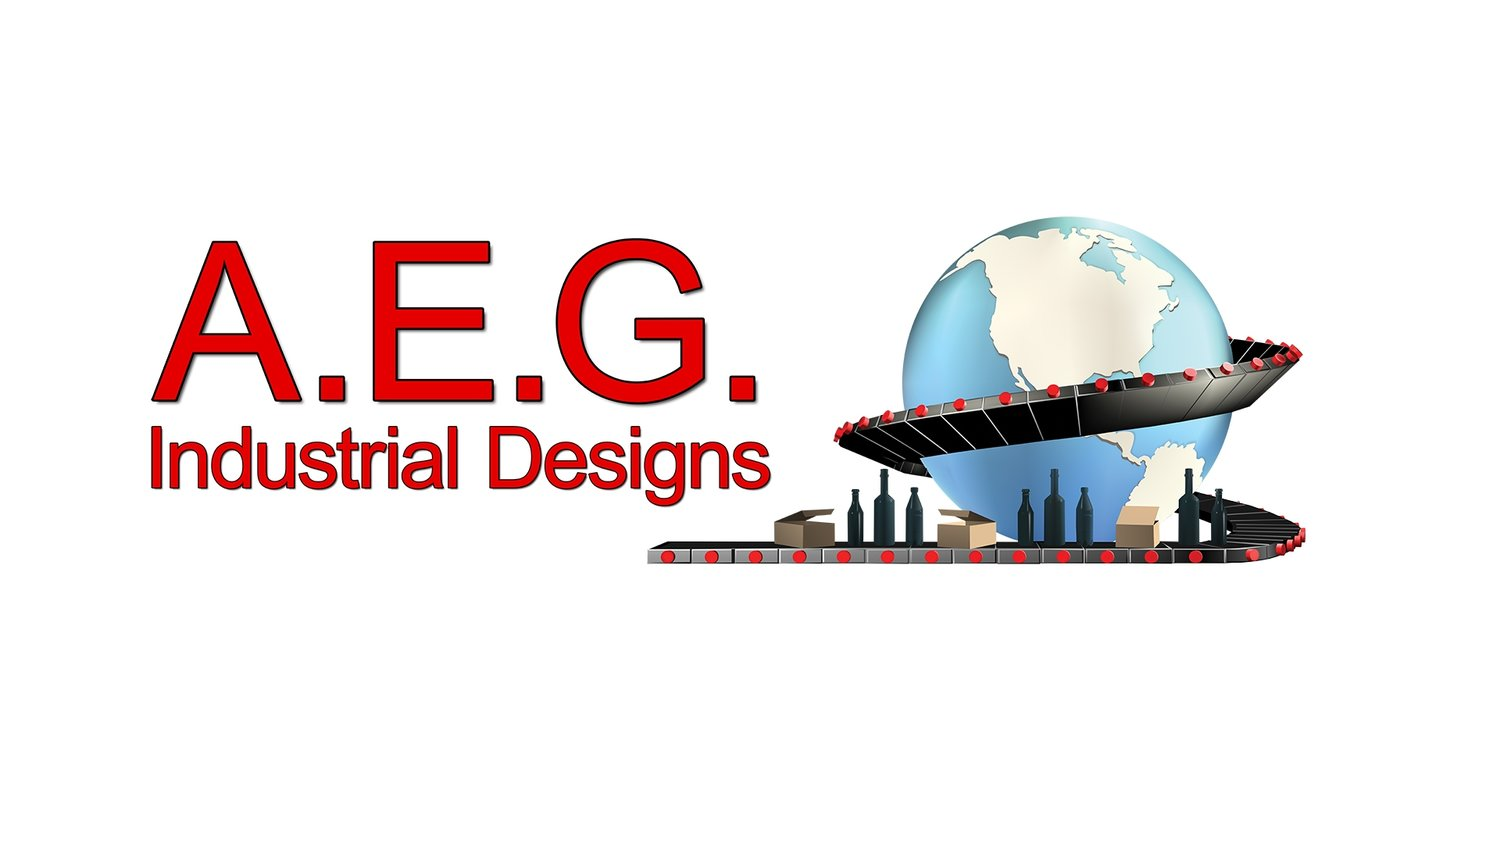 A.E.G. Industrial Designs